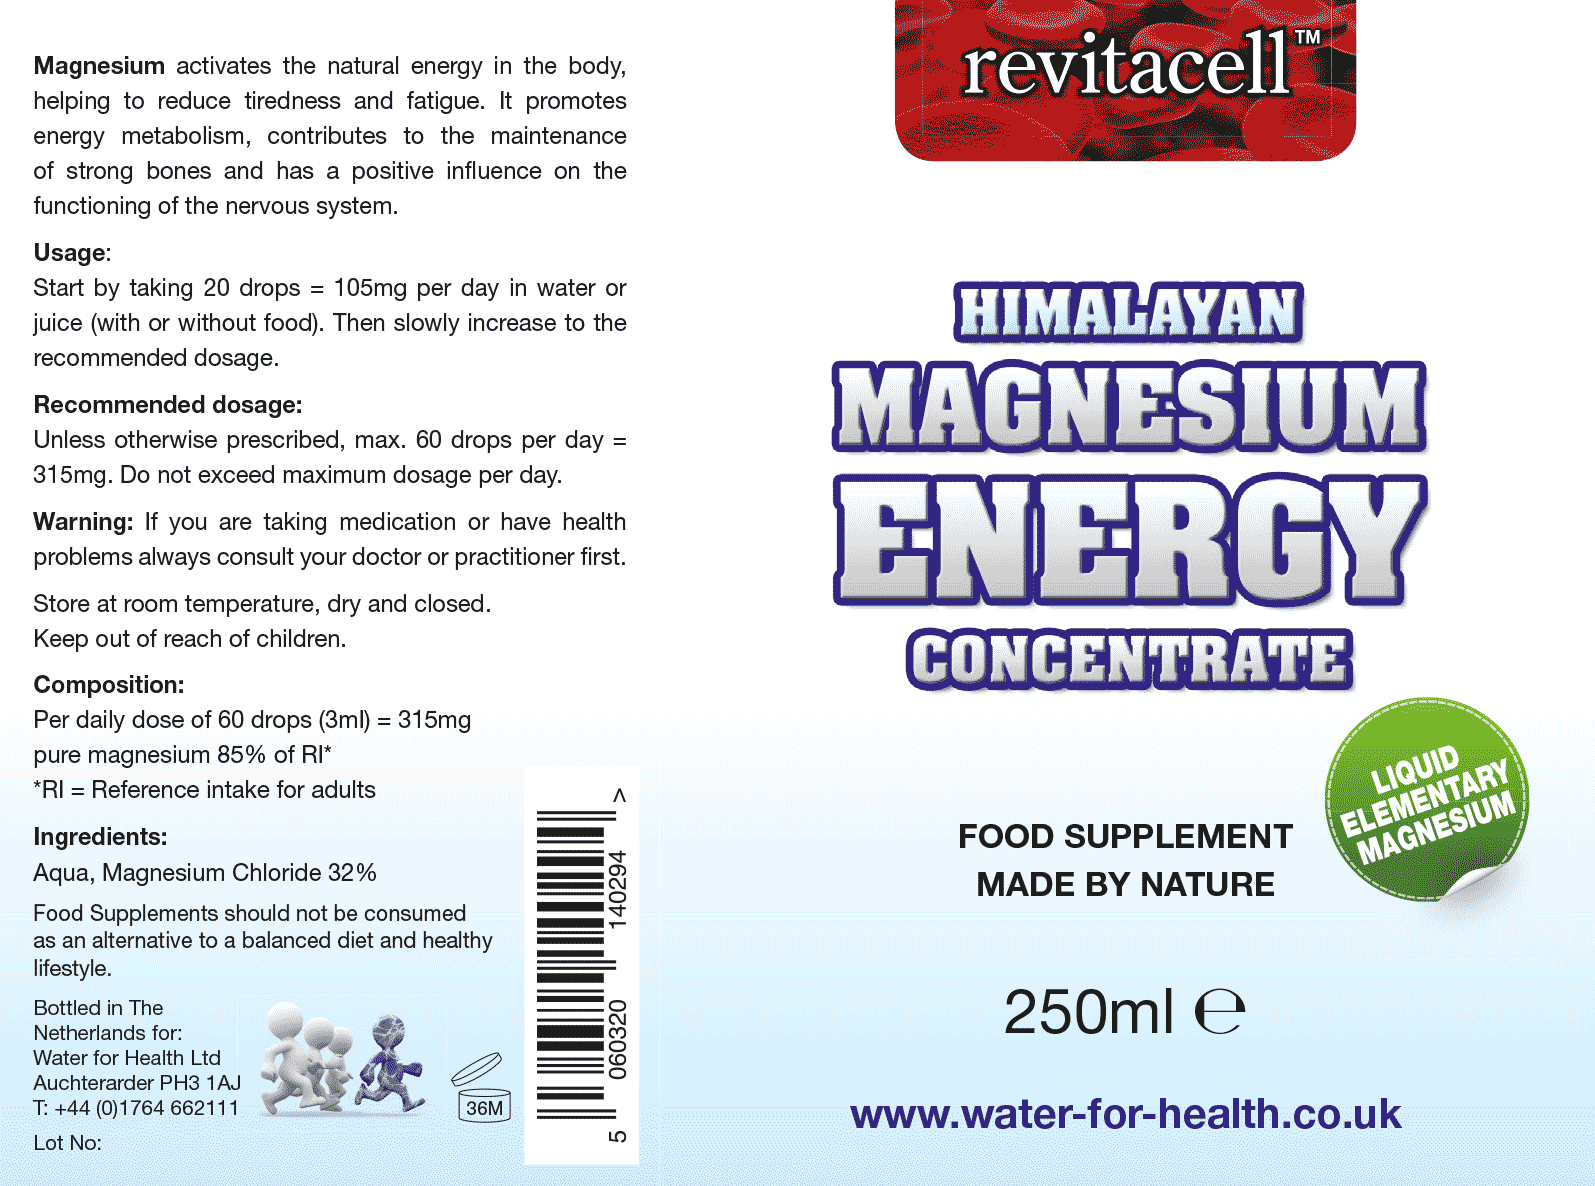 Magnesium Energy Concentrate Supplement Facts